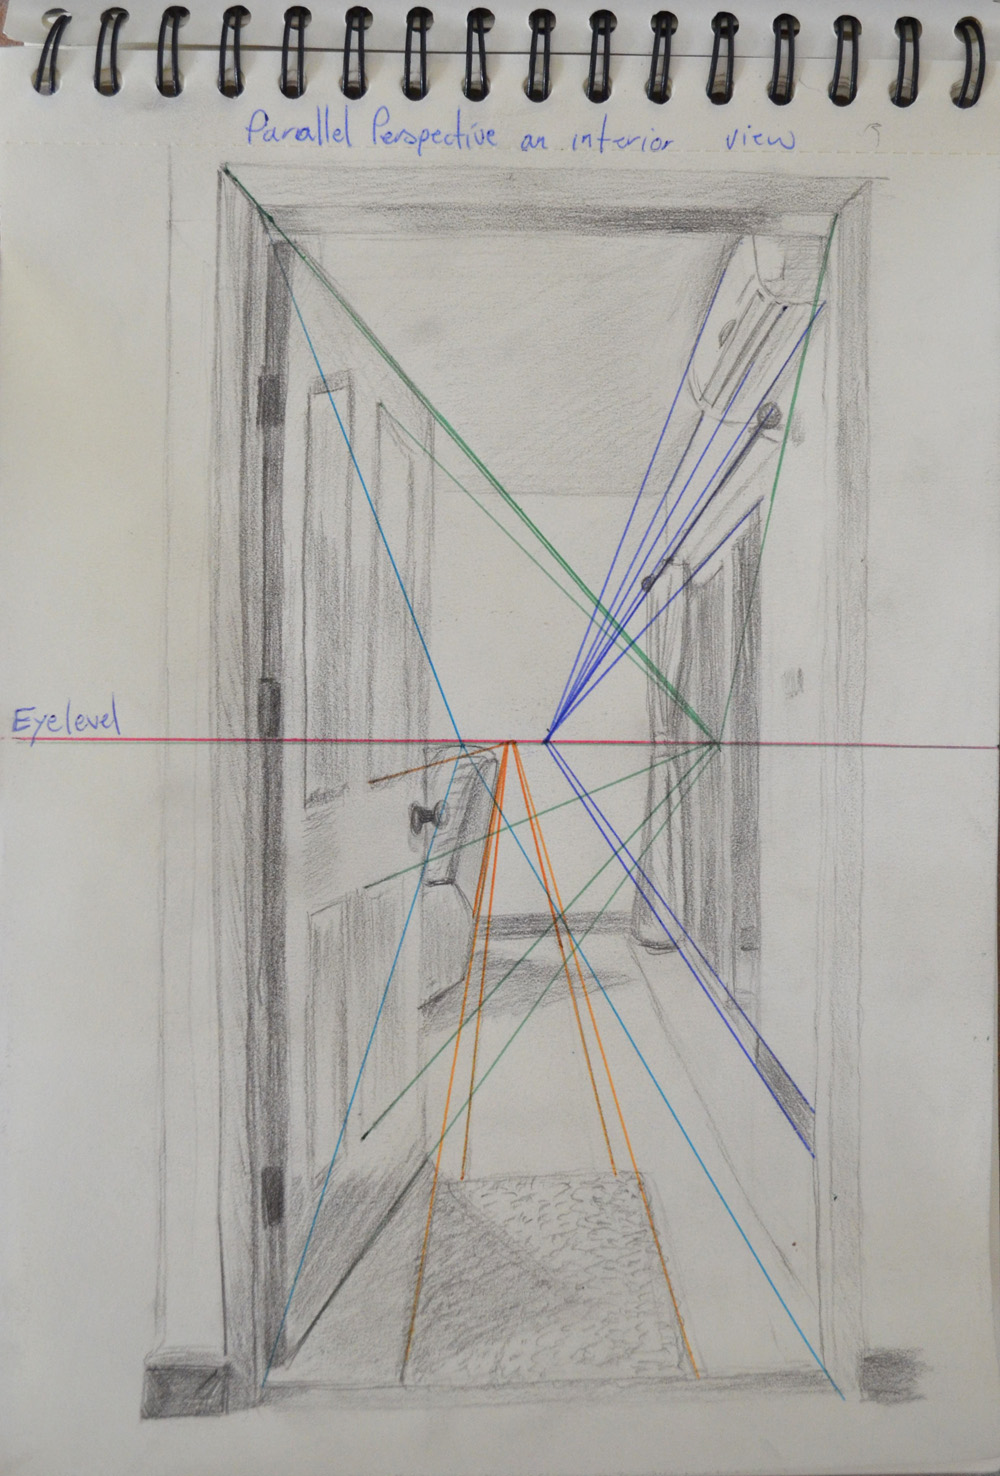 Open door drawing perspective - Parallel Perspective An Interior View With Superimposed Lines